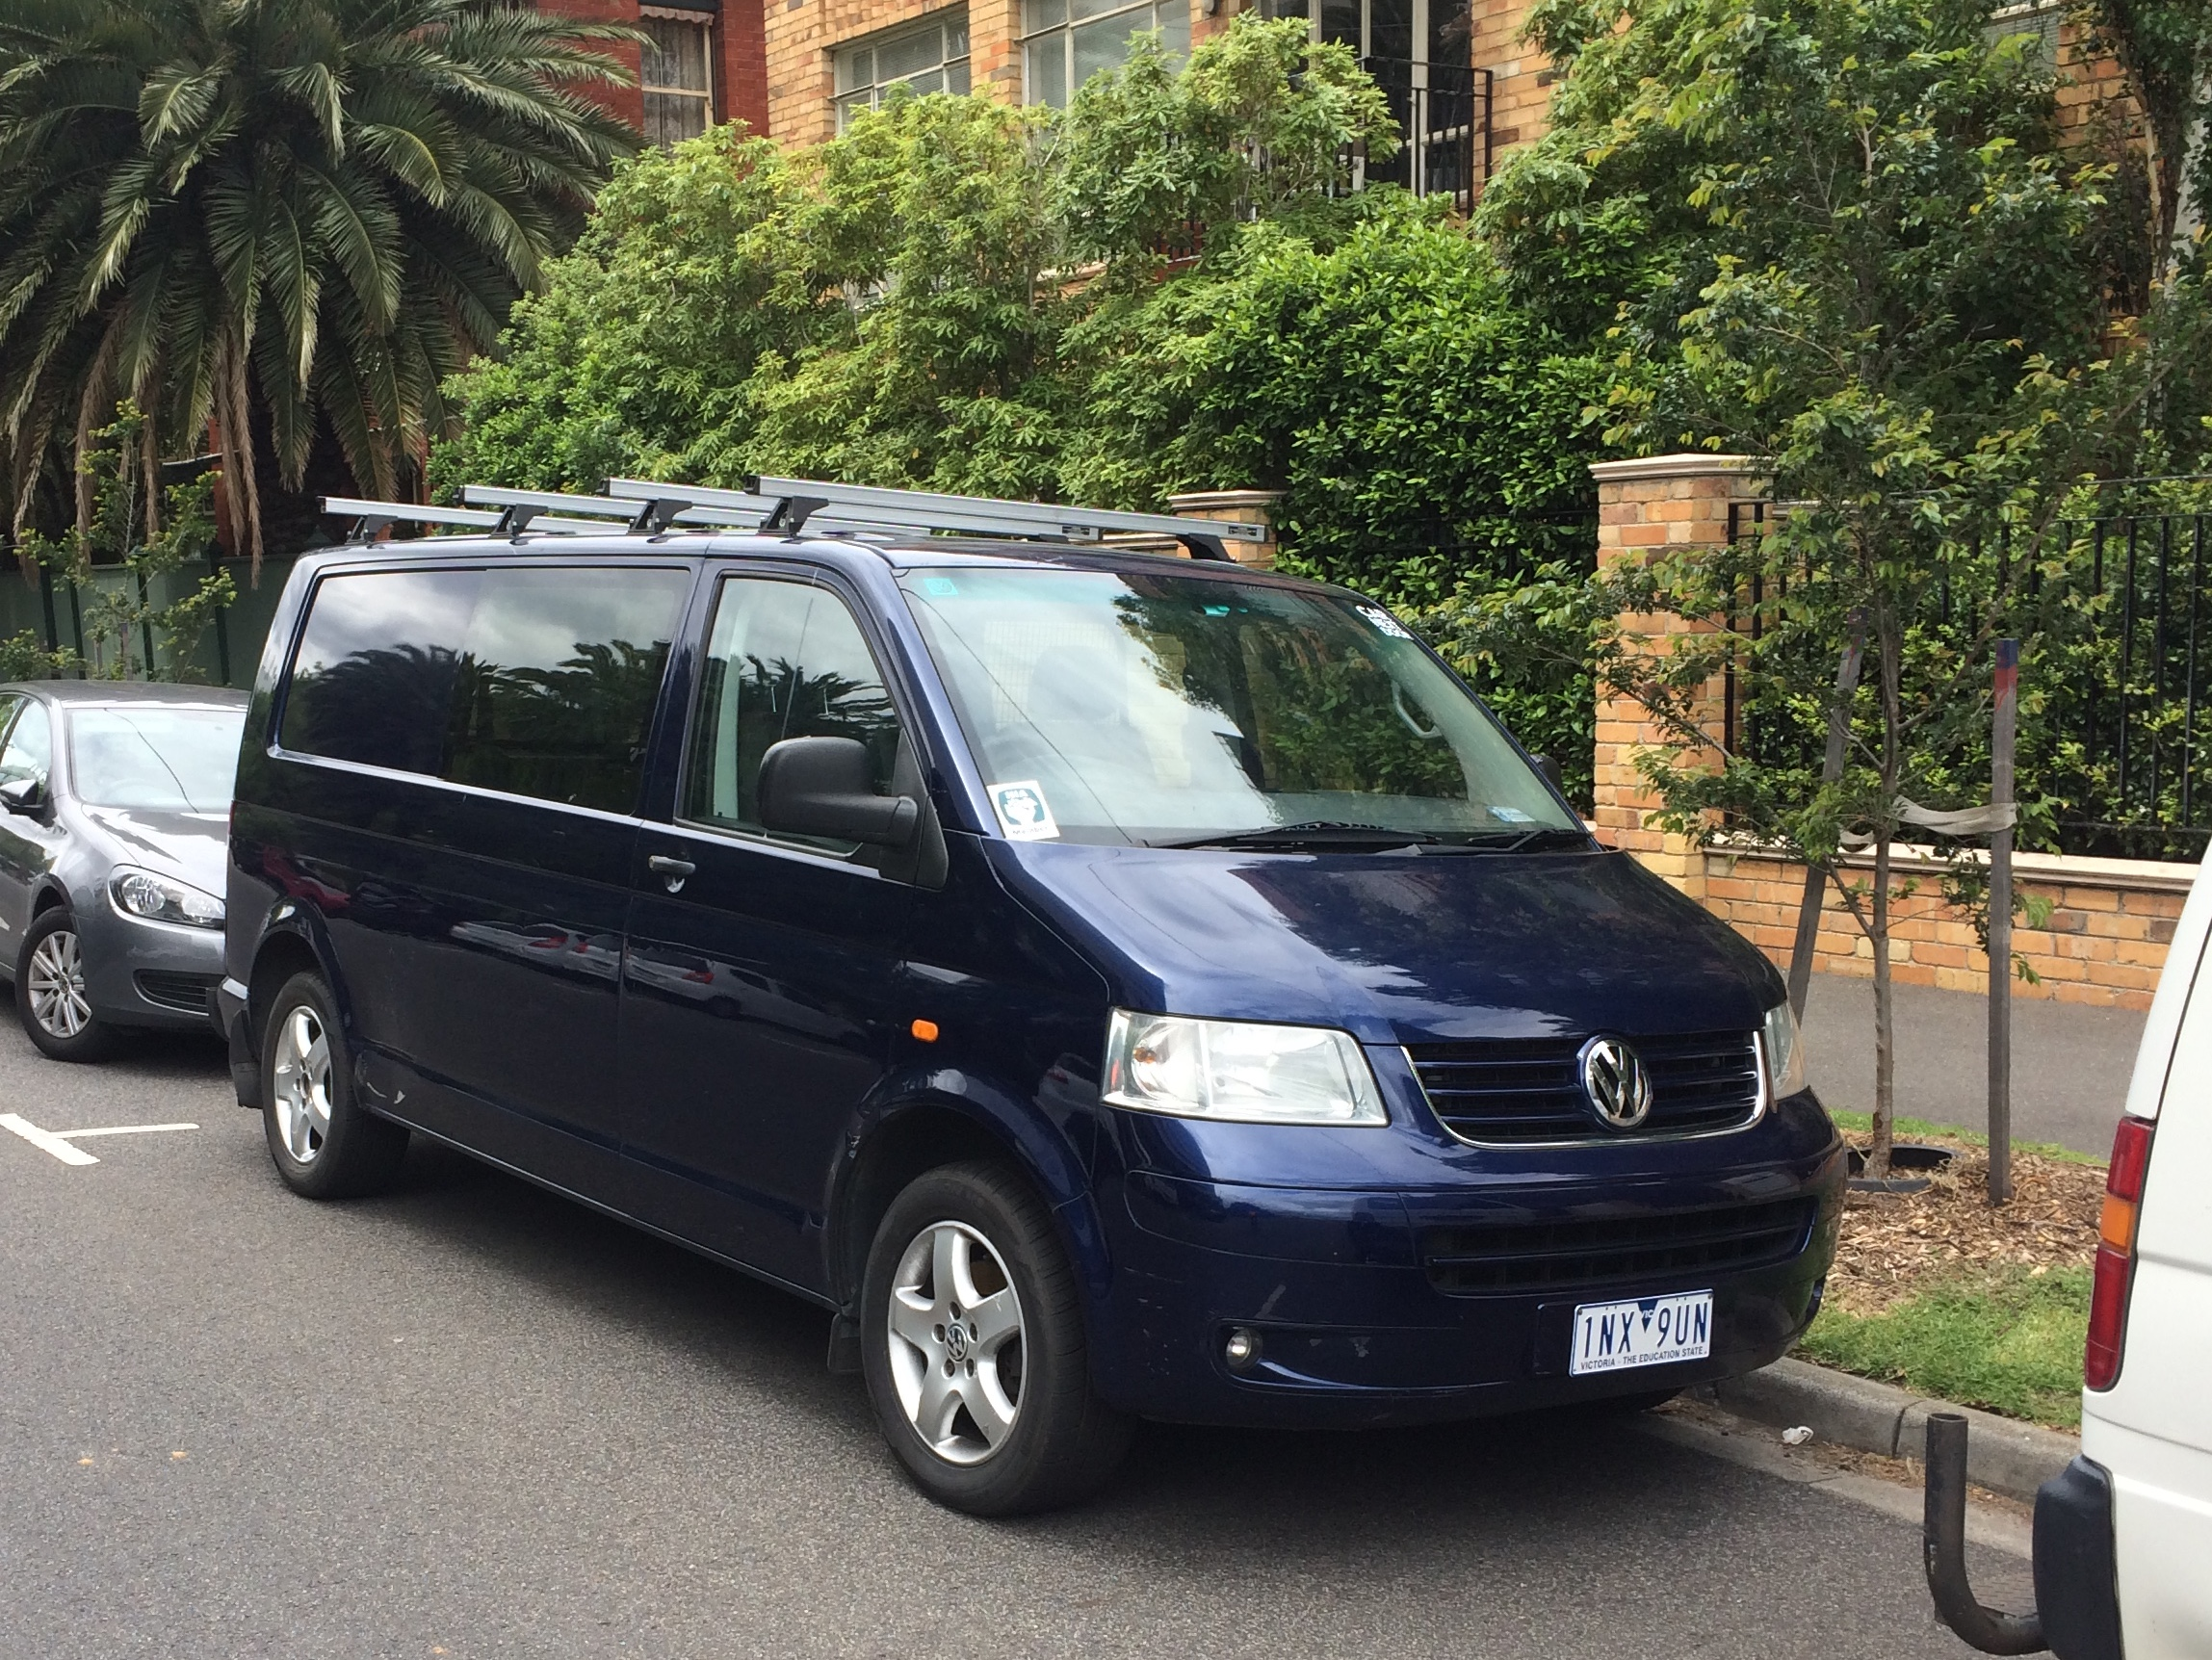 Picture of Remi's 2007 Volkswagen Transporter